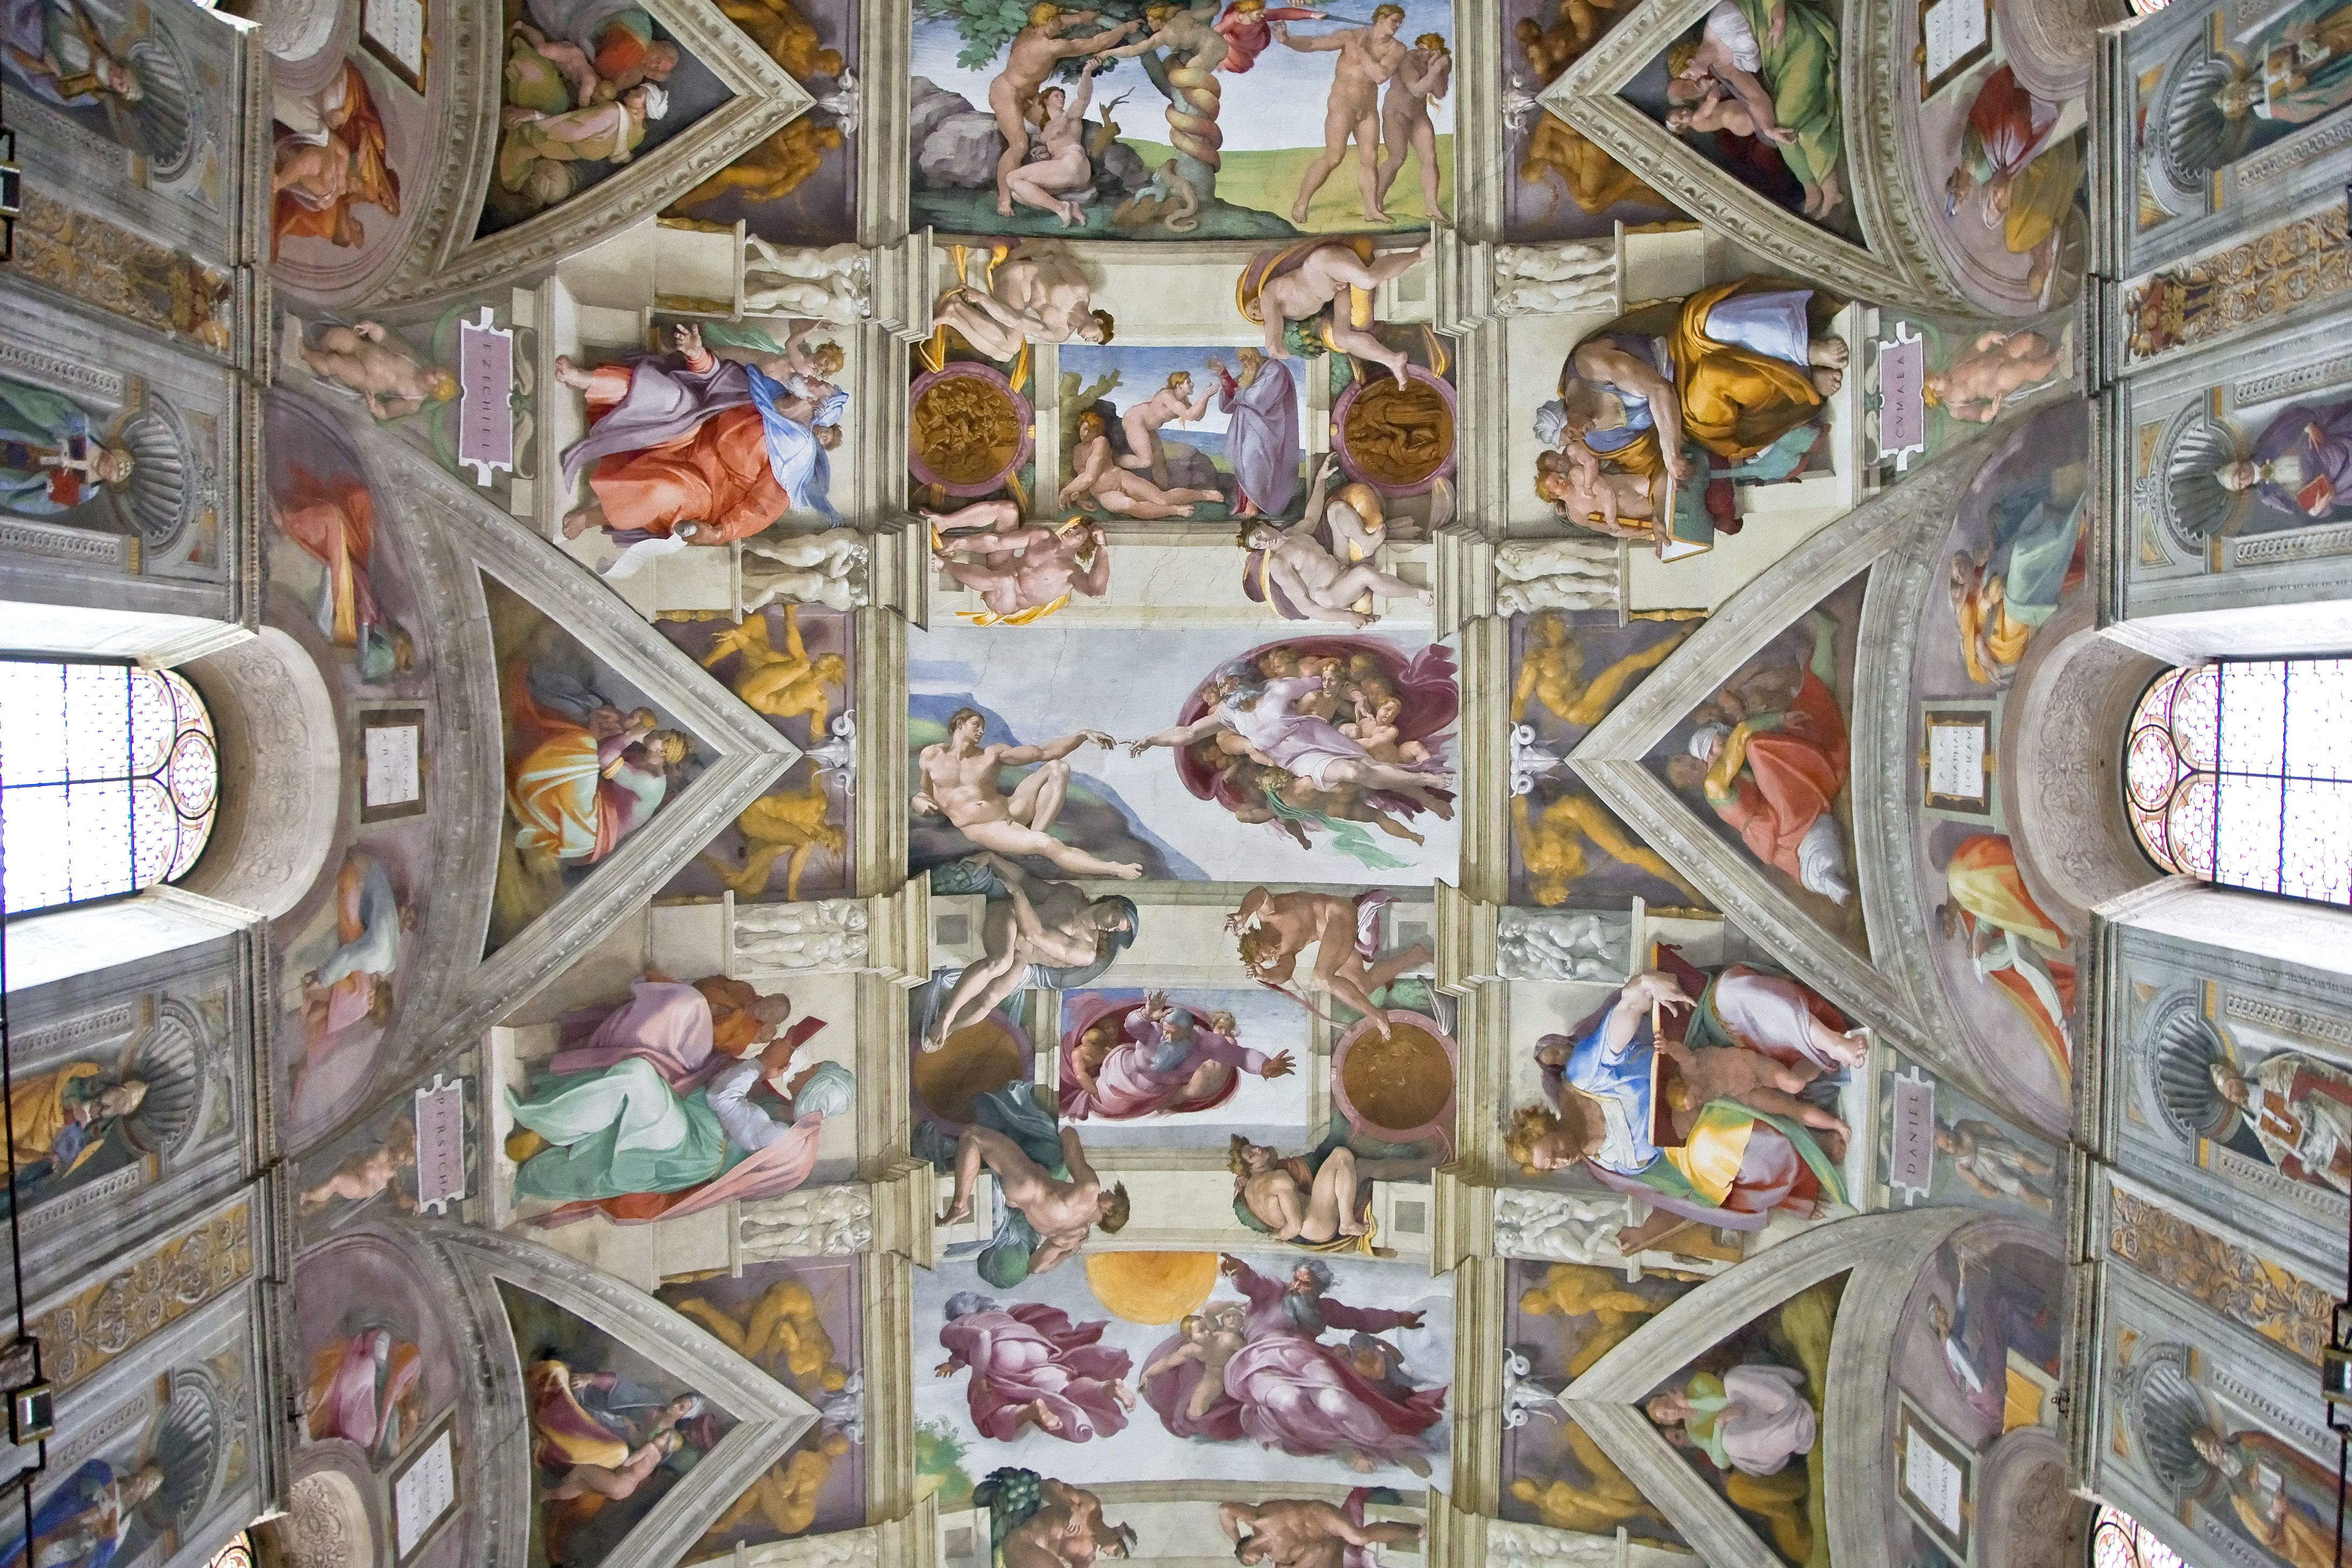 was michelangelo an artist or an architect?